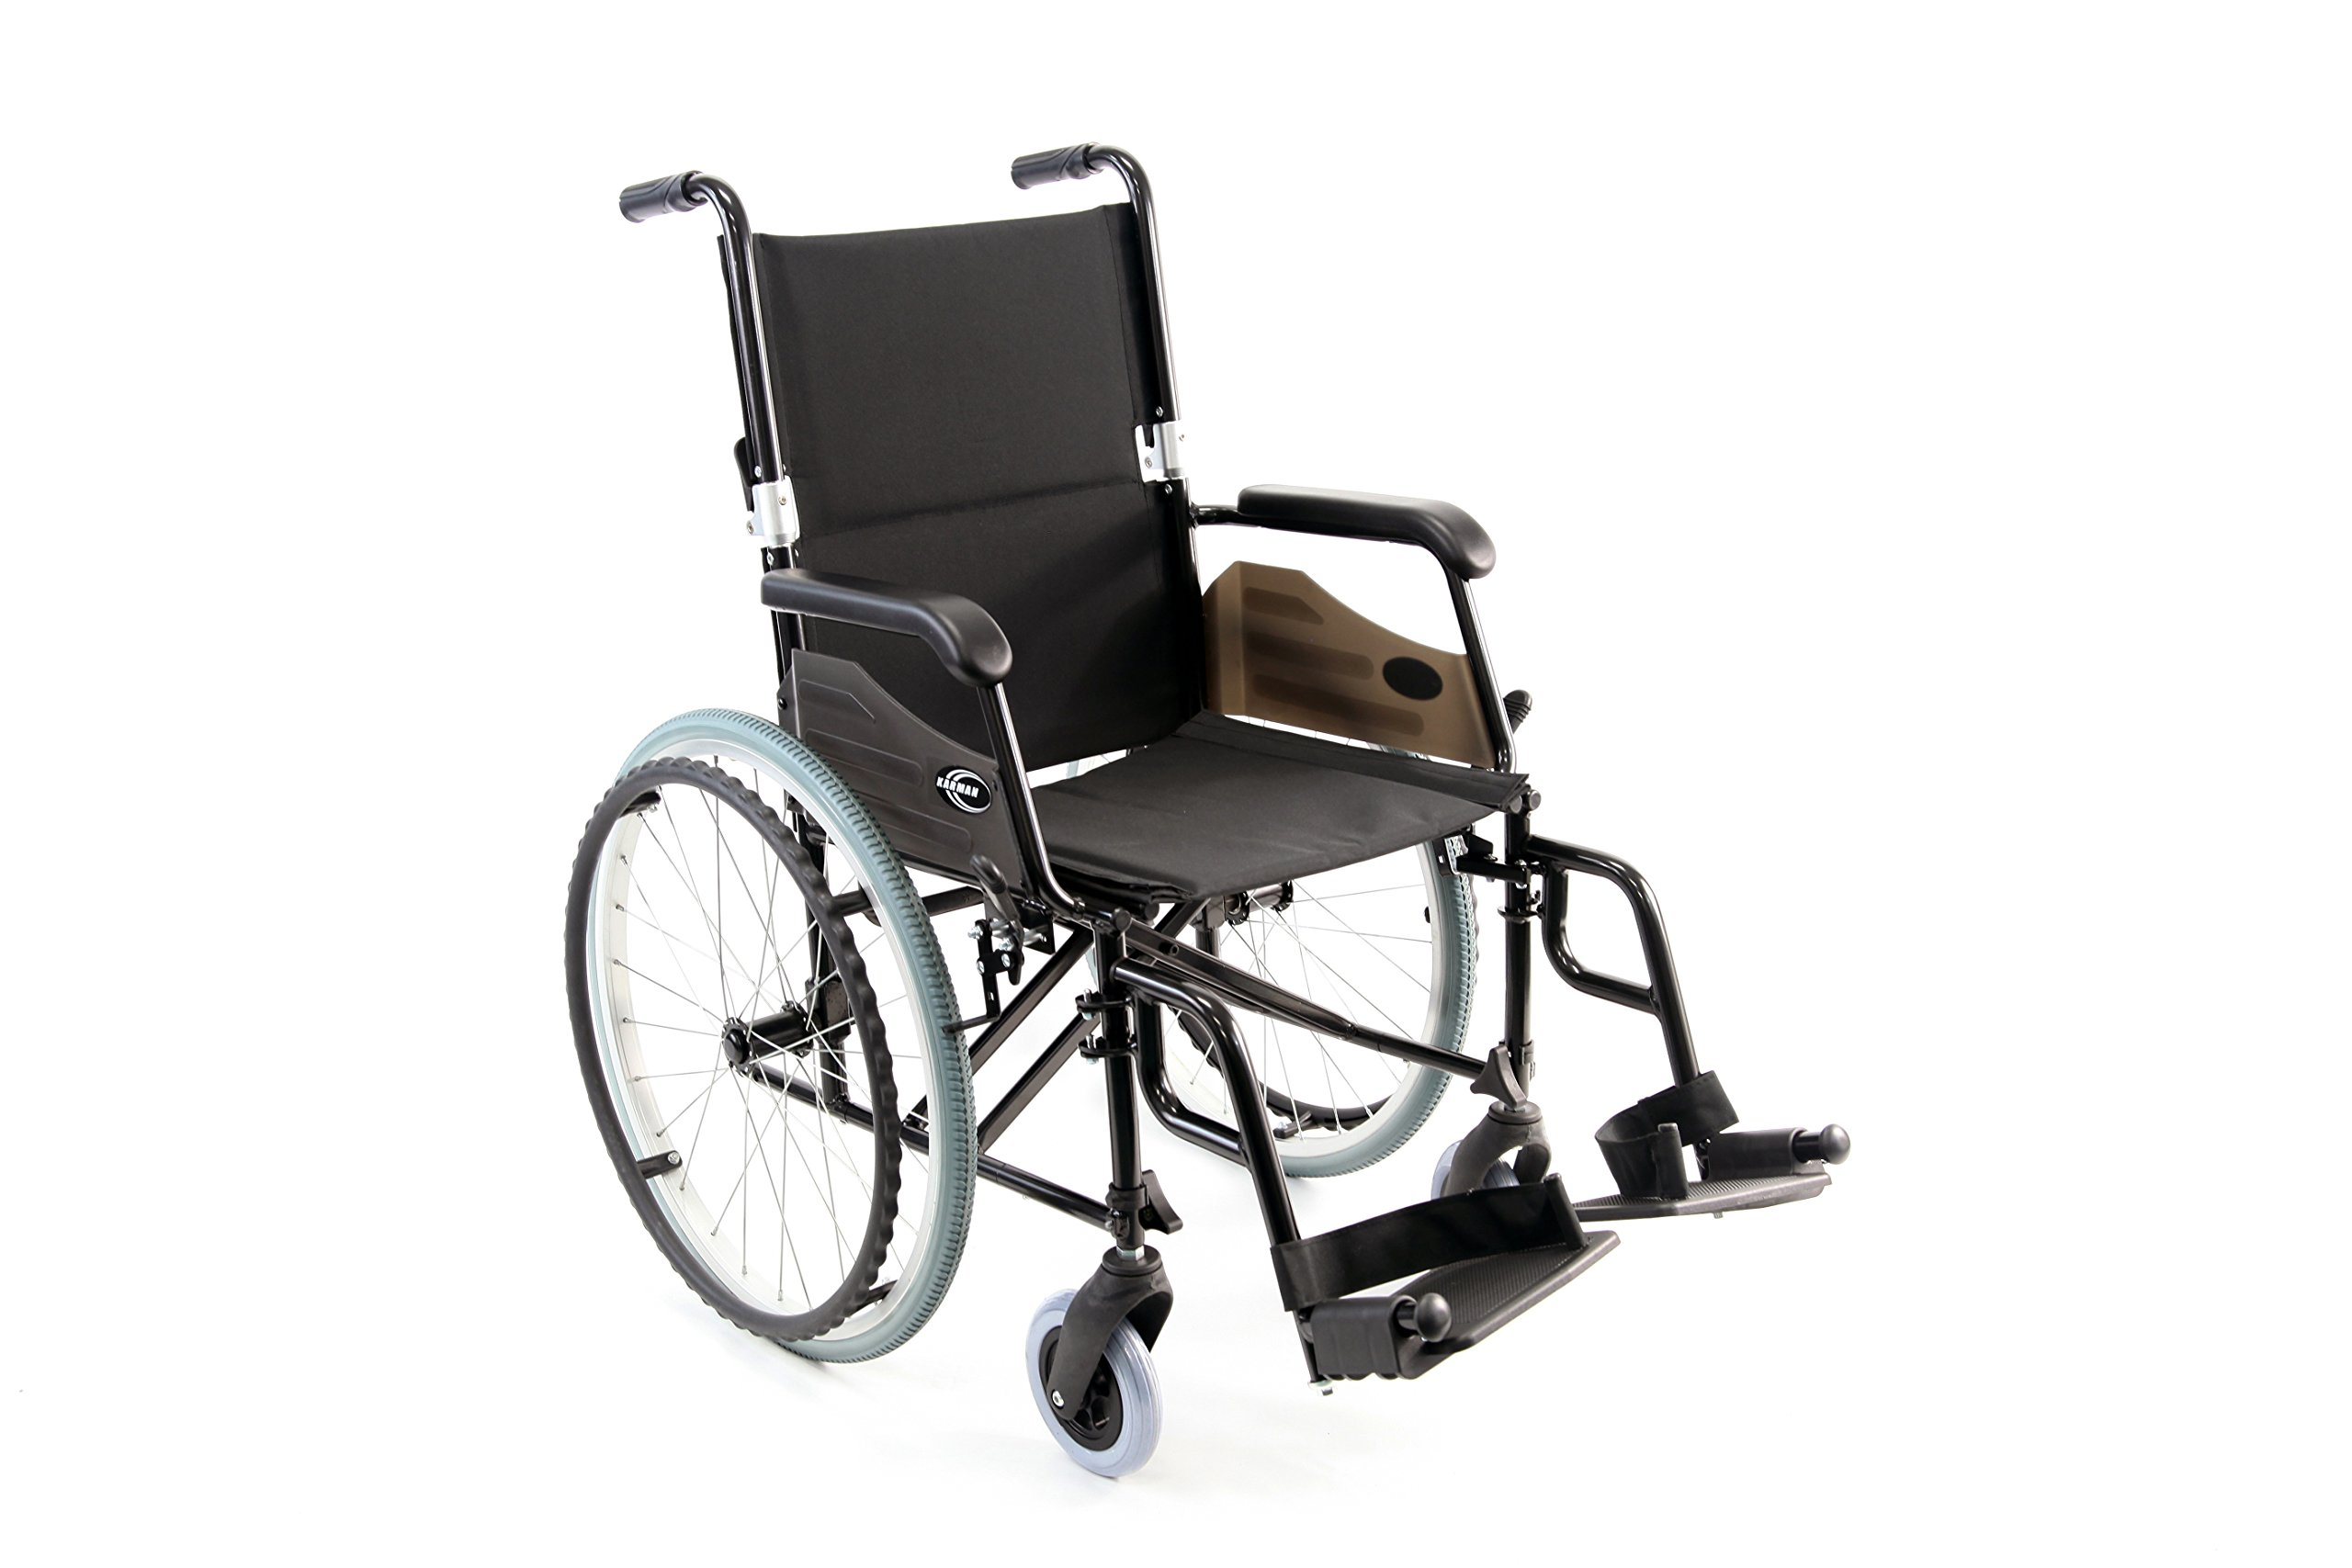 Karman Healthcare Wheelchair with Quick Release, Wheels, Black, 24 Pound